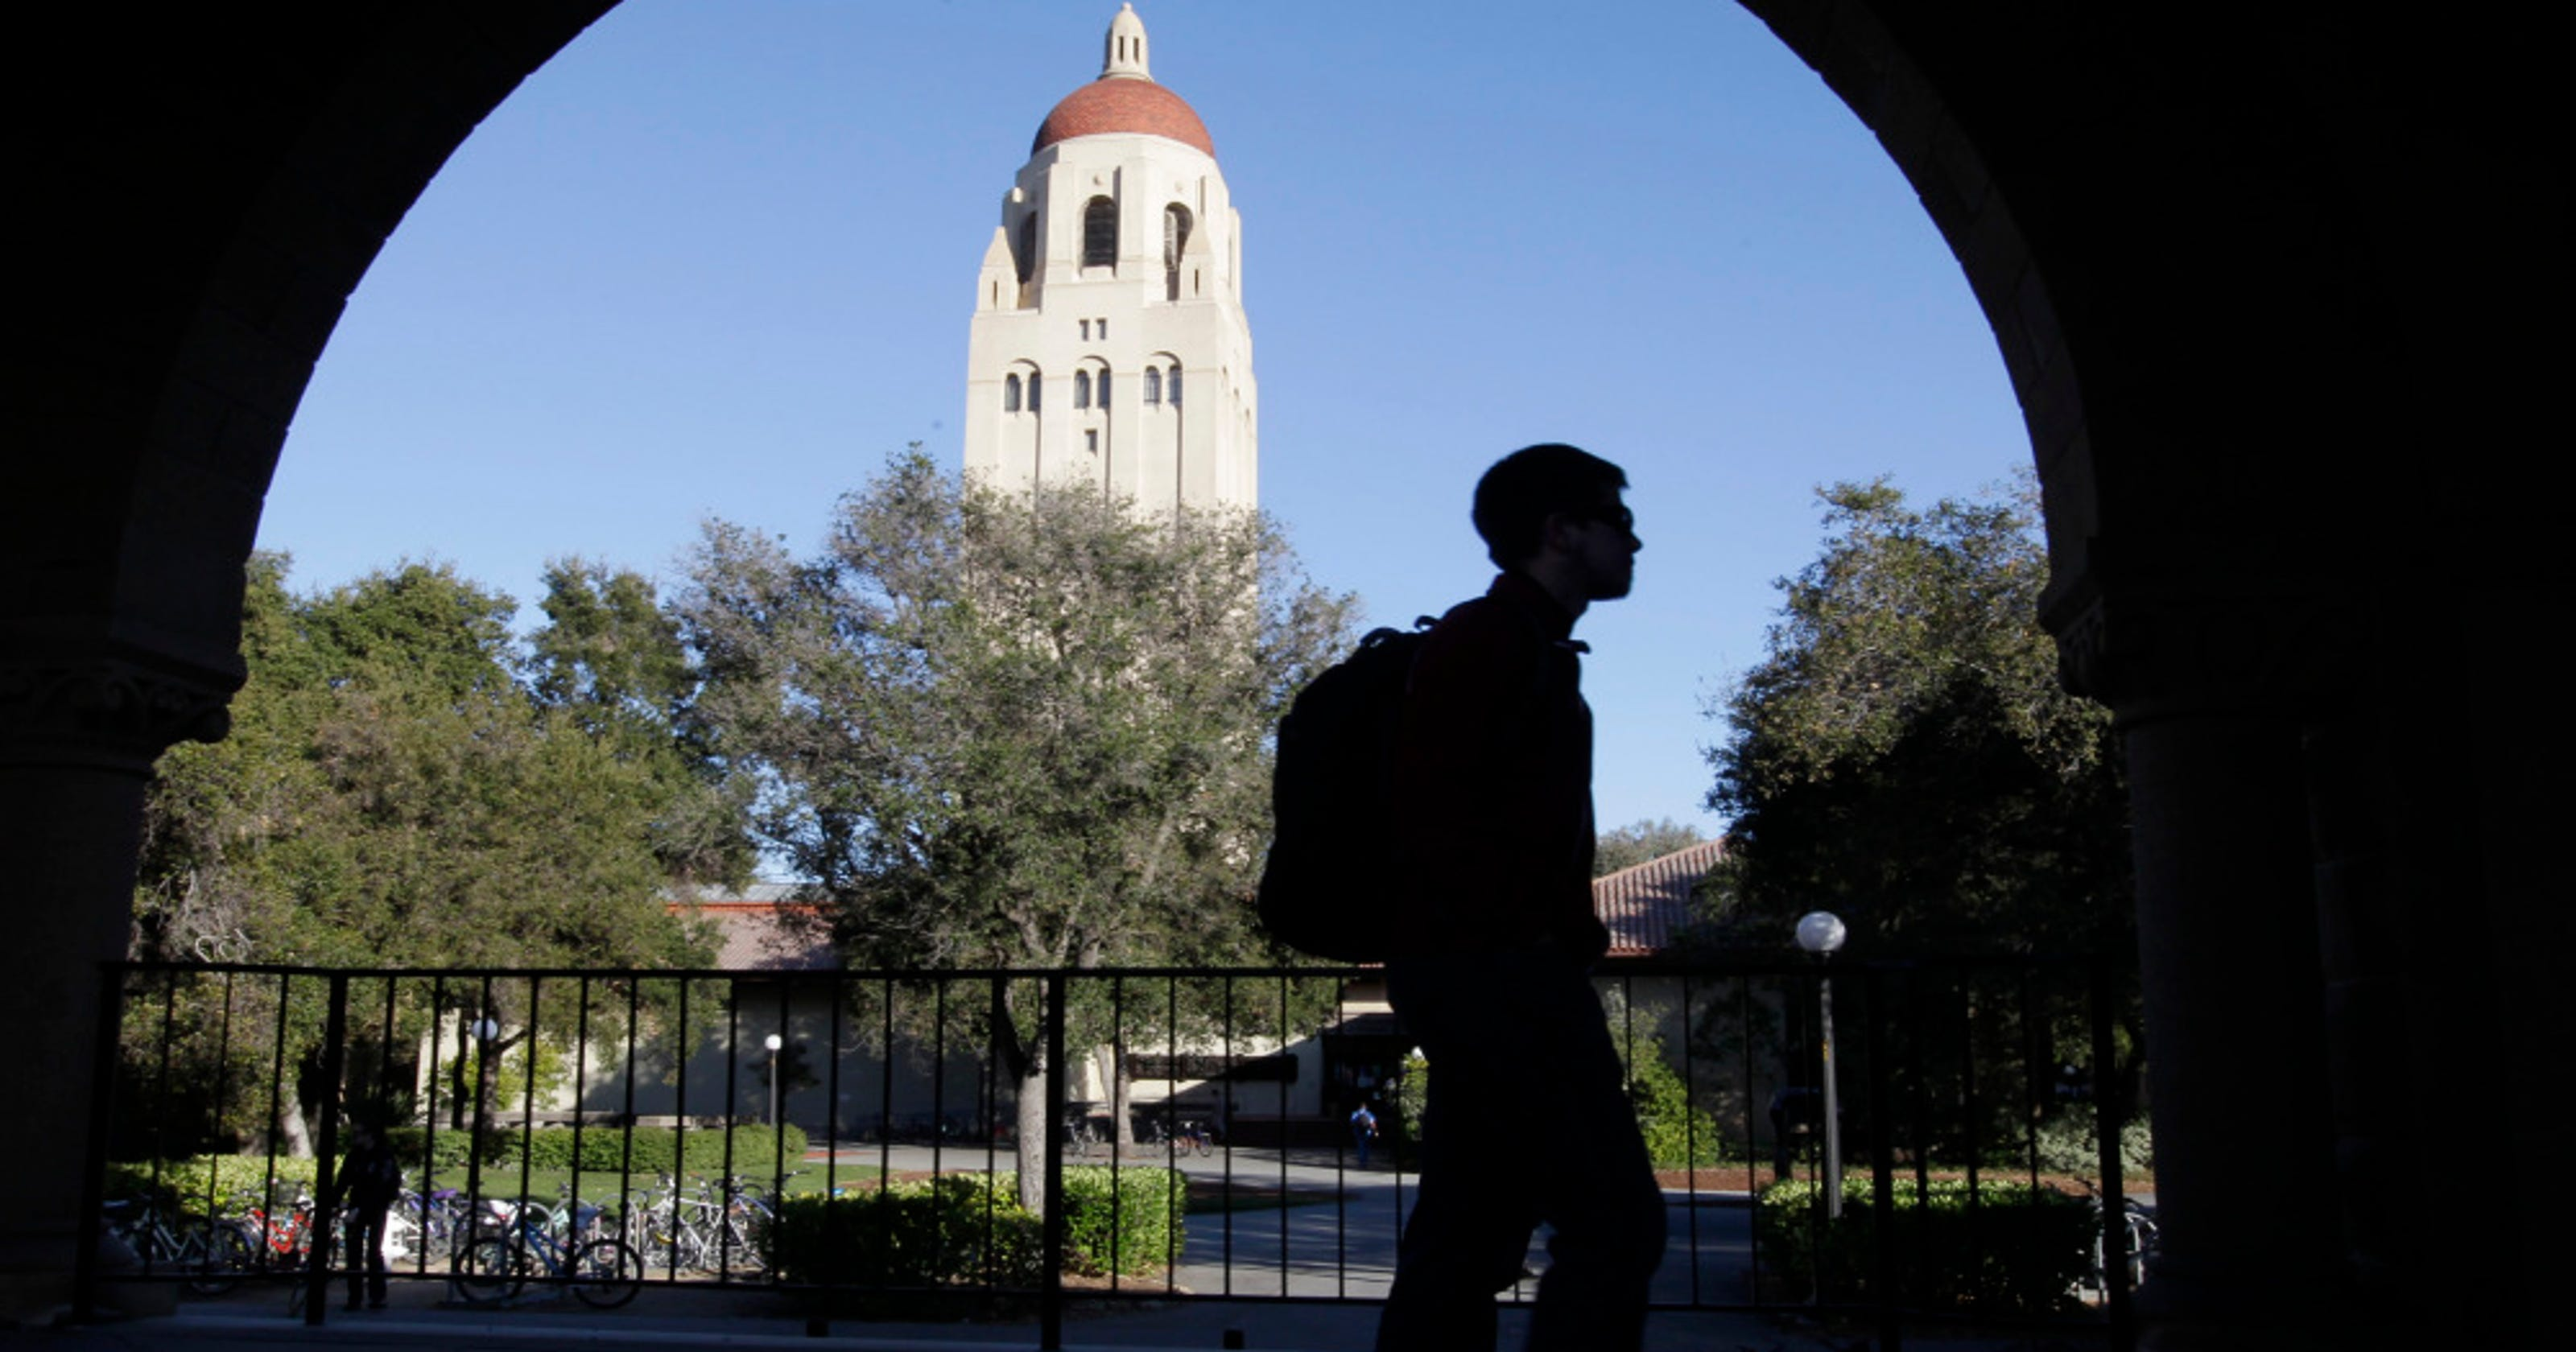 College admissions scandal: Mom confirms $6 5M payment to